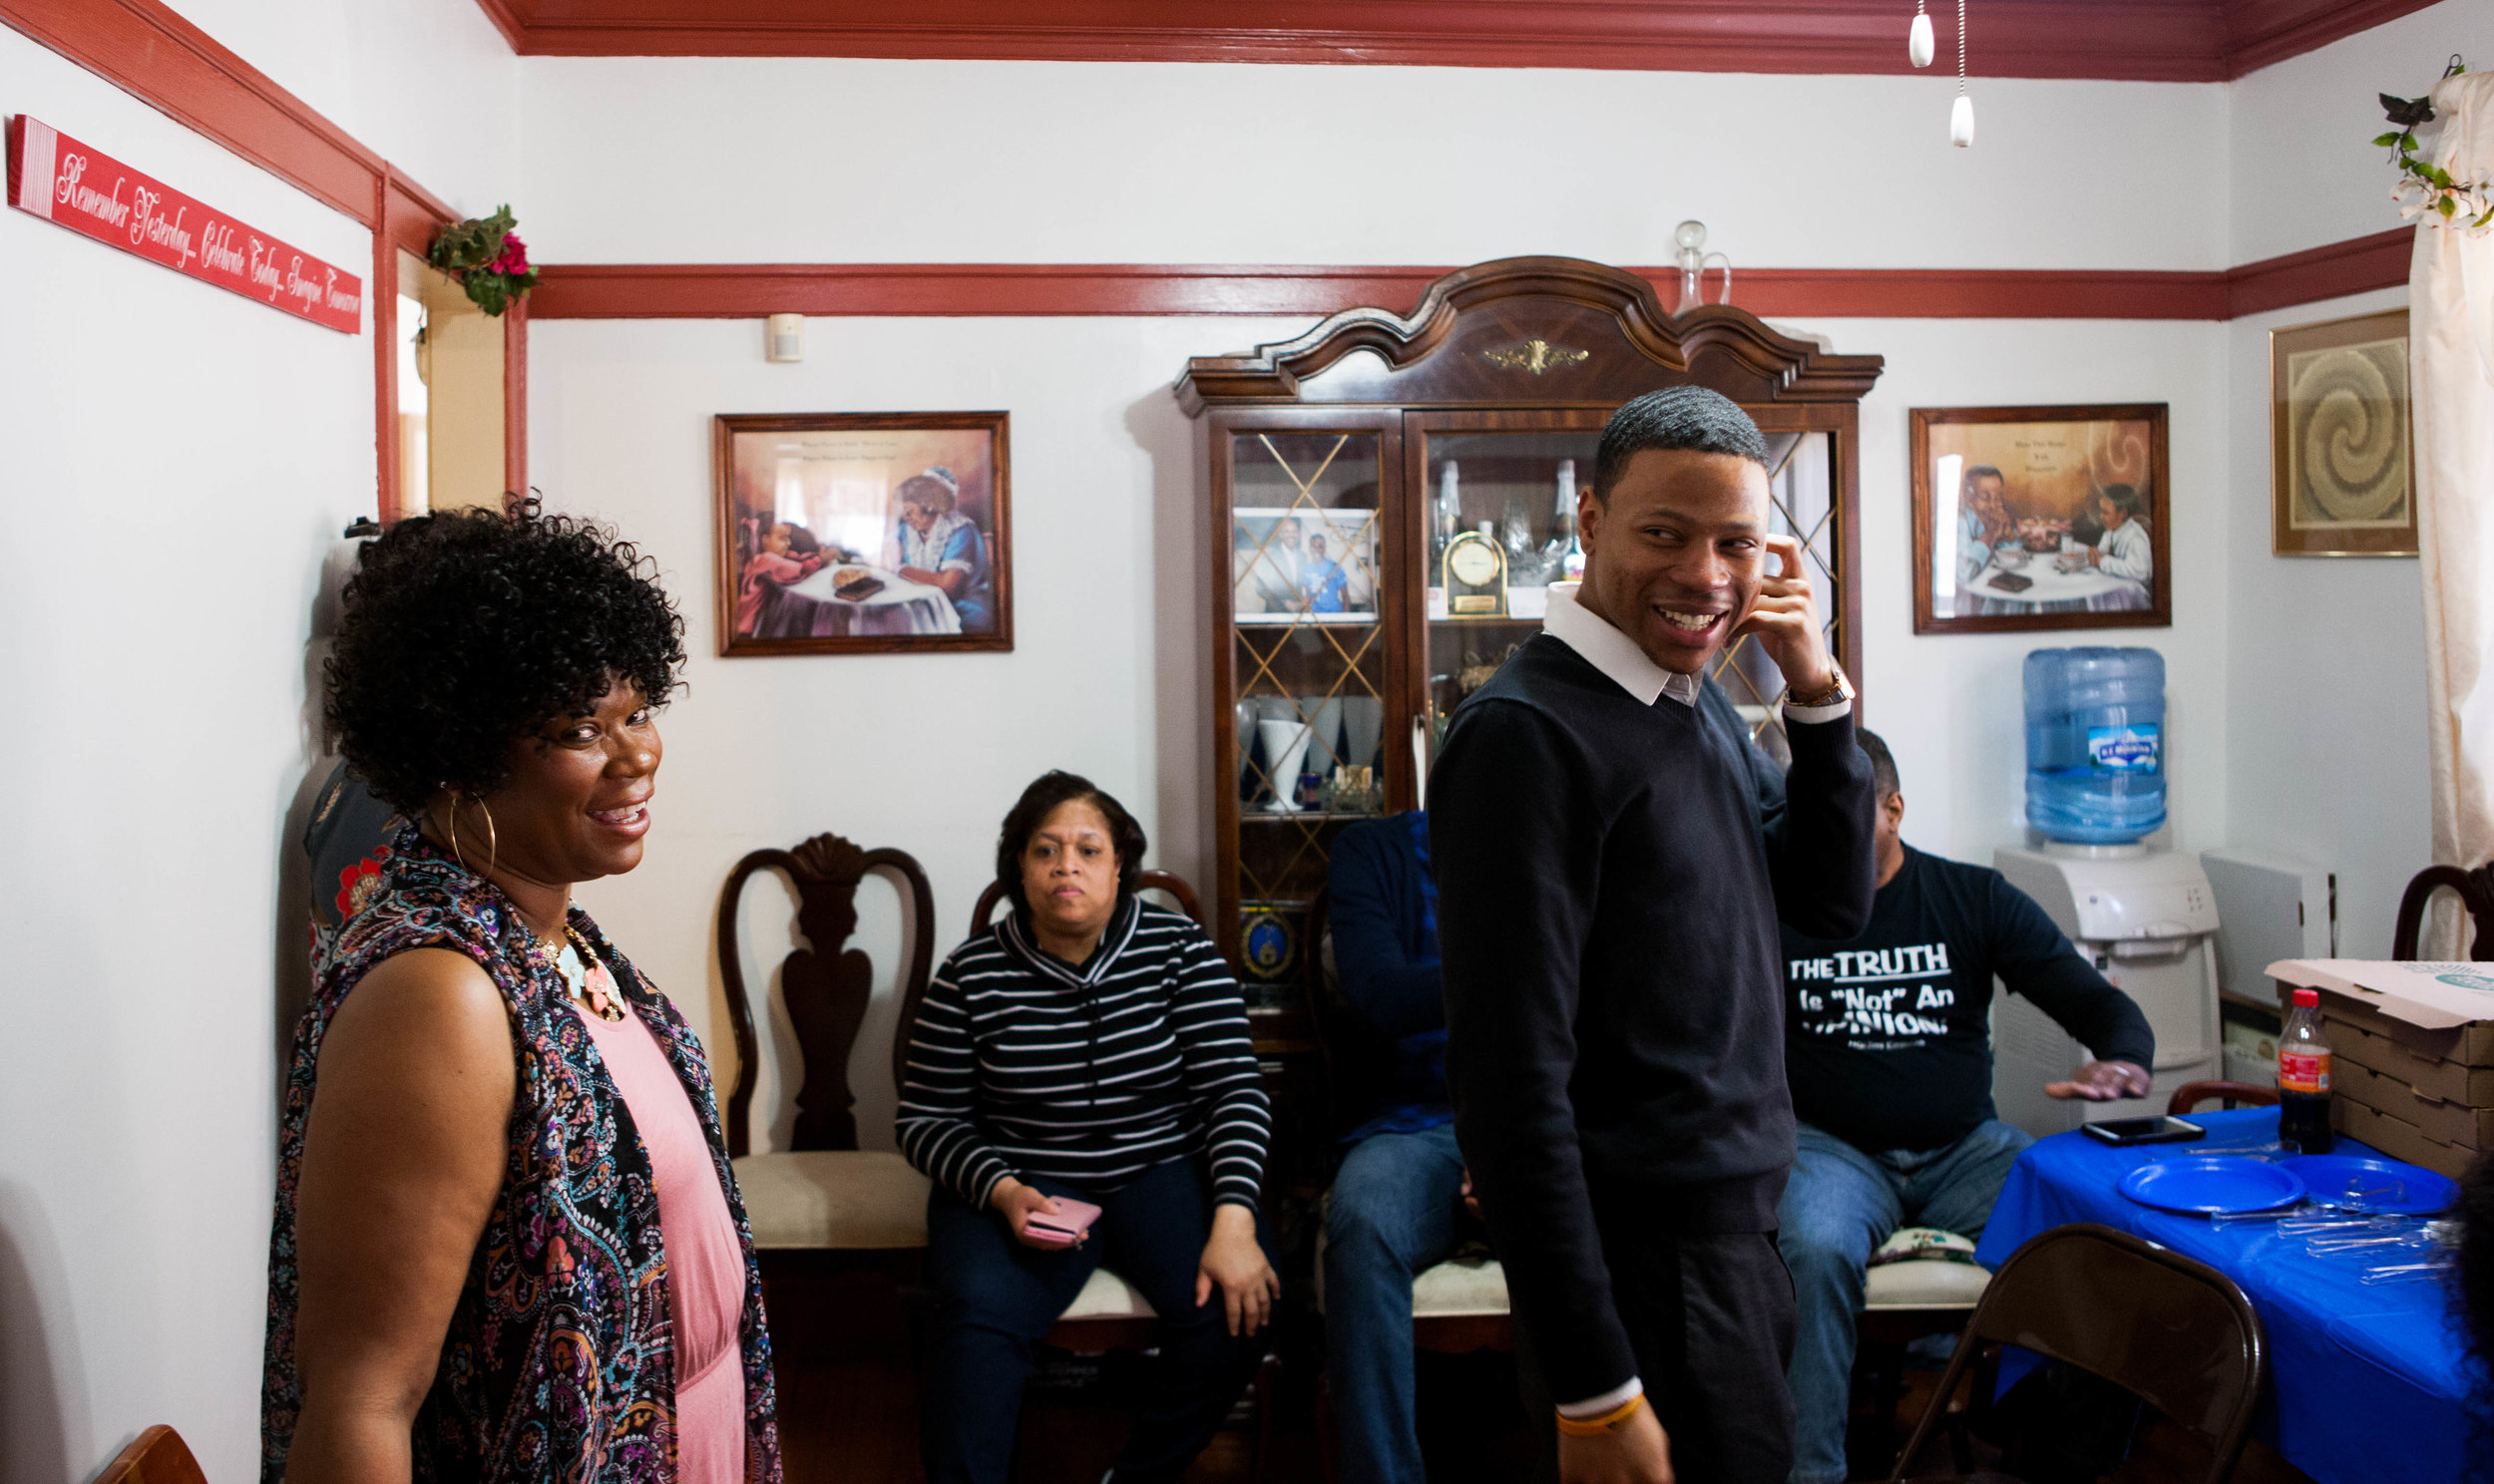 Robert and his mother stand in the center of the room while Robert addresses guests at a fundraiser at her home.